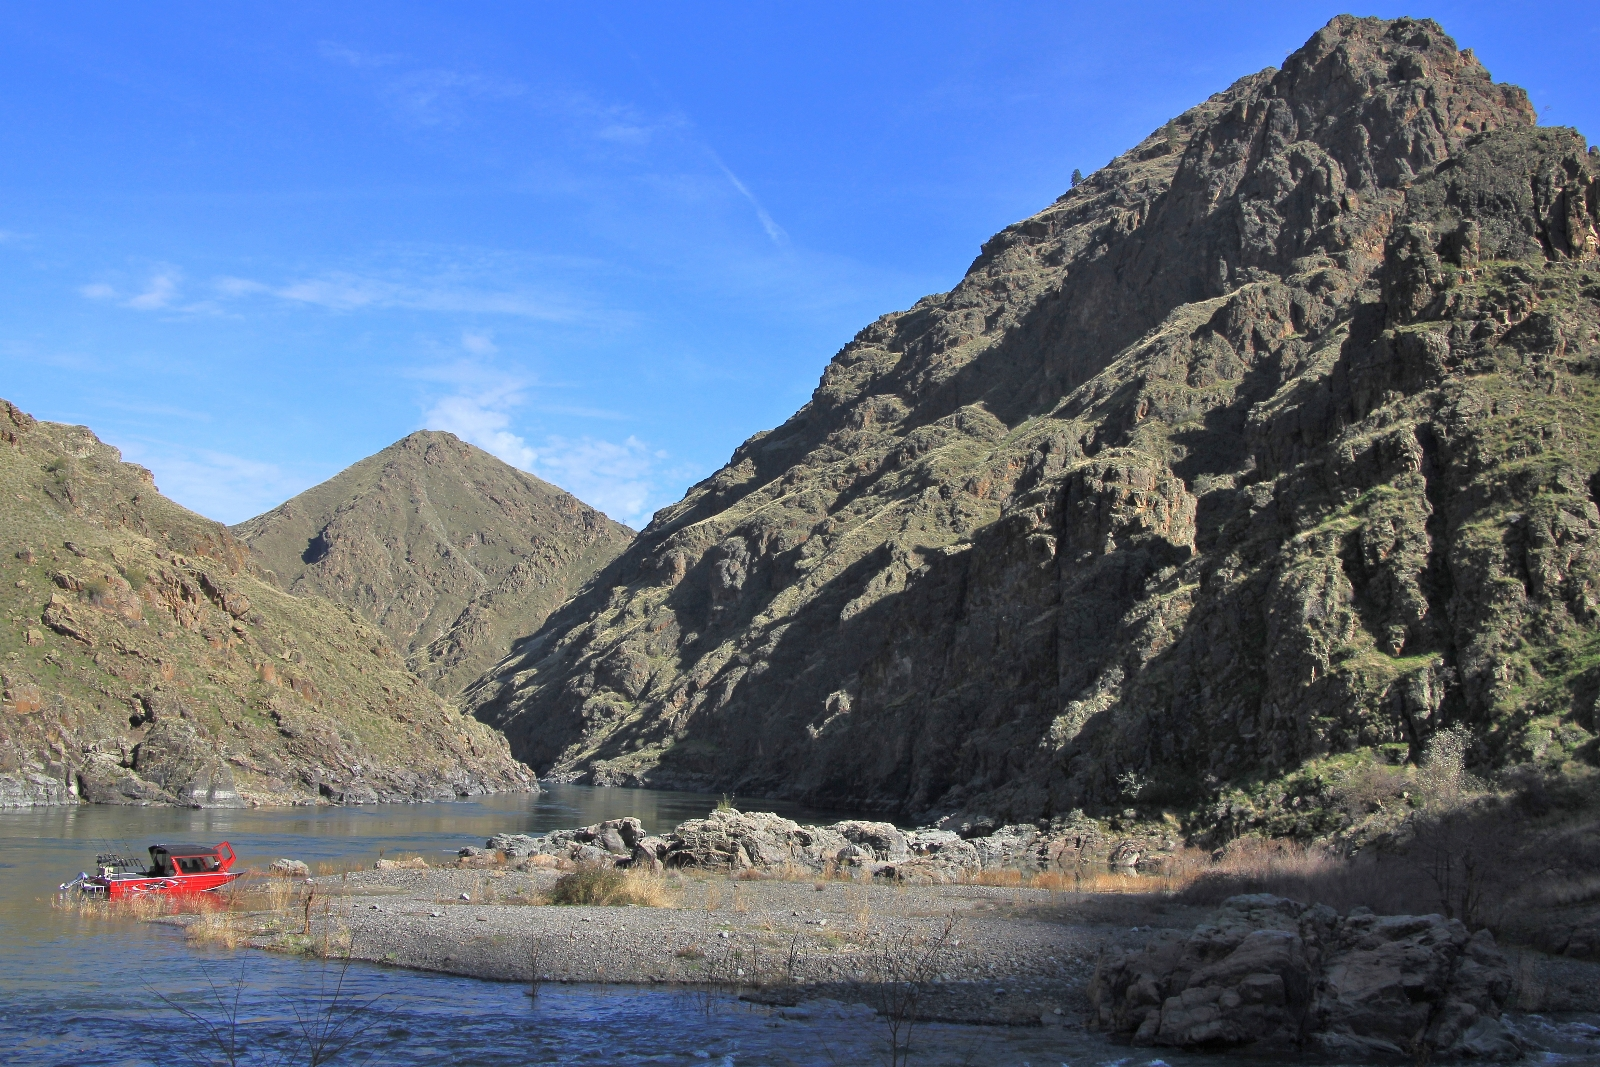 Confluence of Imnaha and Snake Rivers in Hells Canyon, Idaho-Oregon border